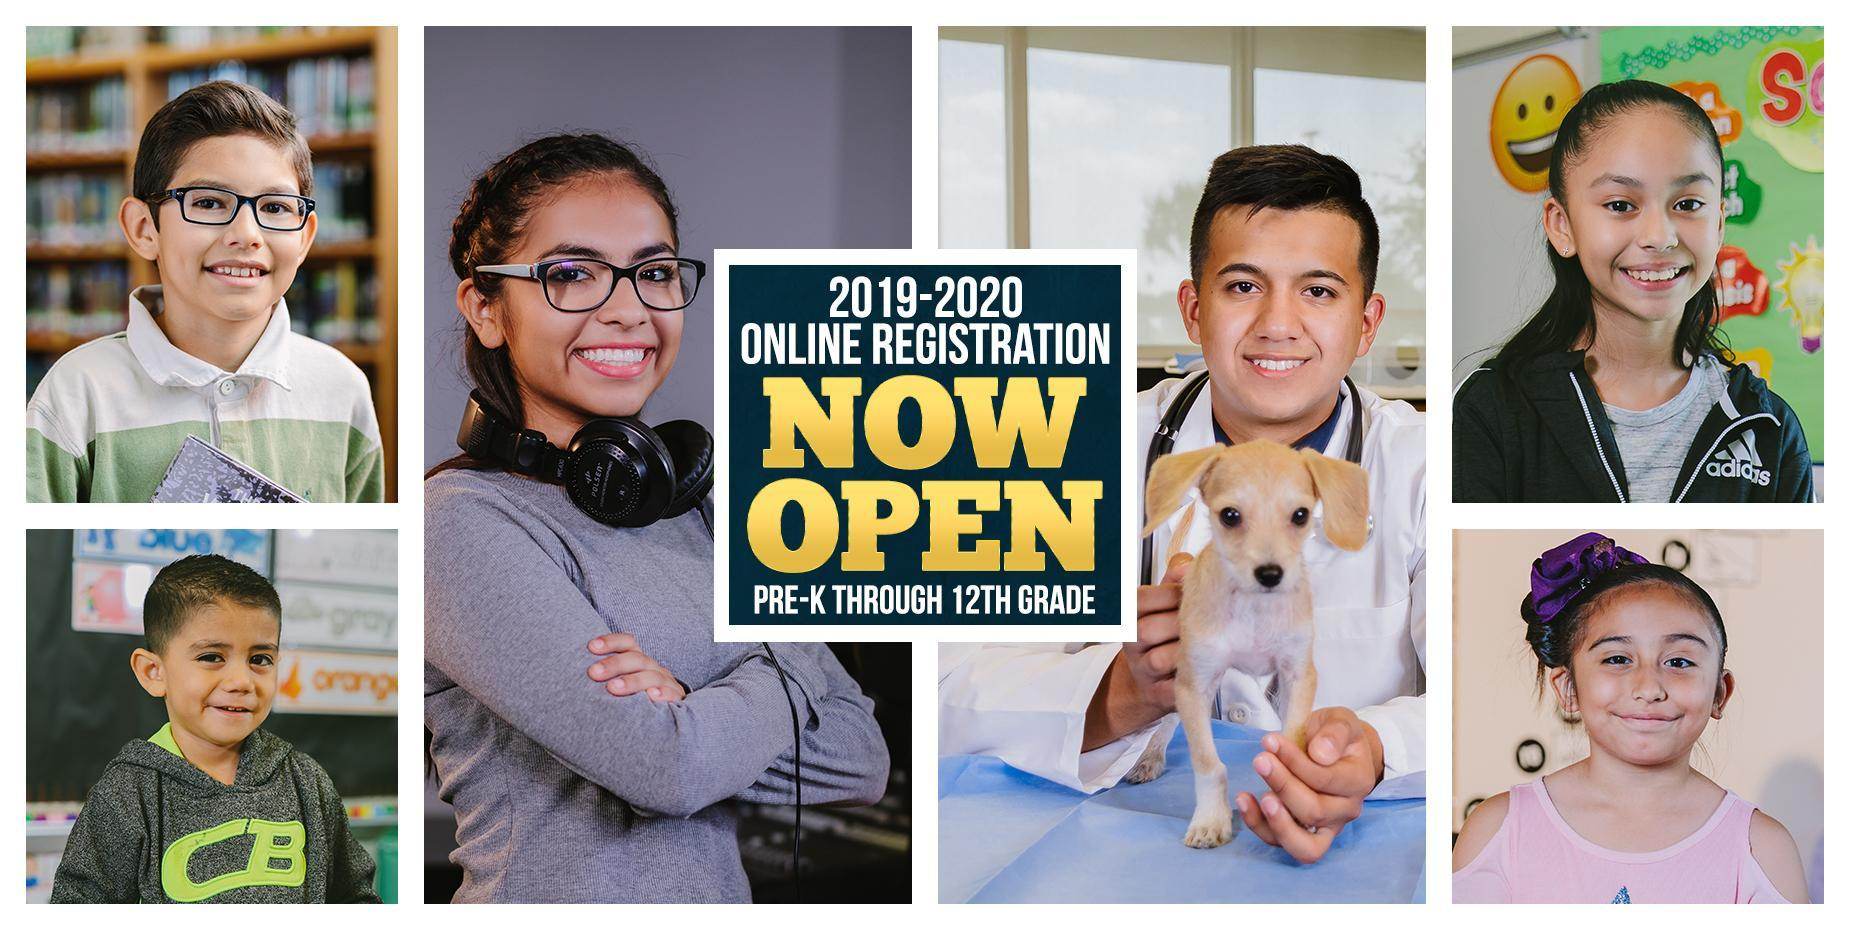 Online Registration Now Open for Pre-K through 12th